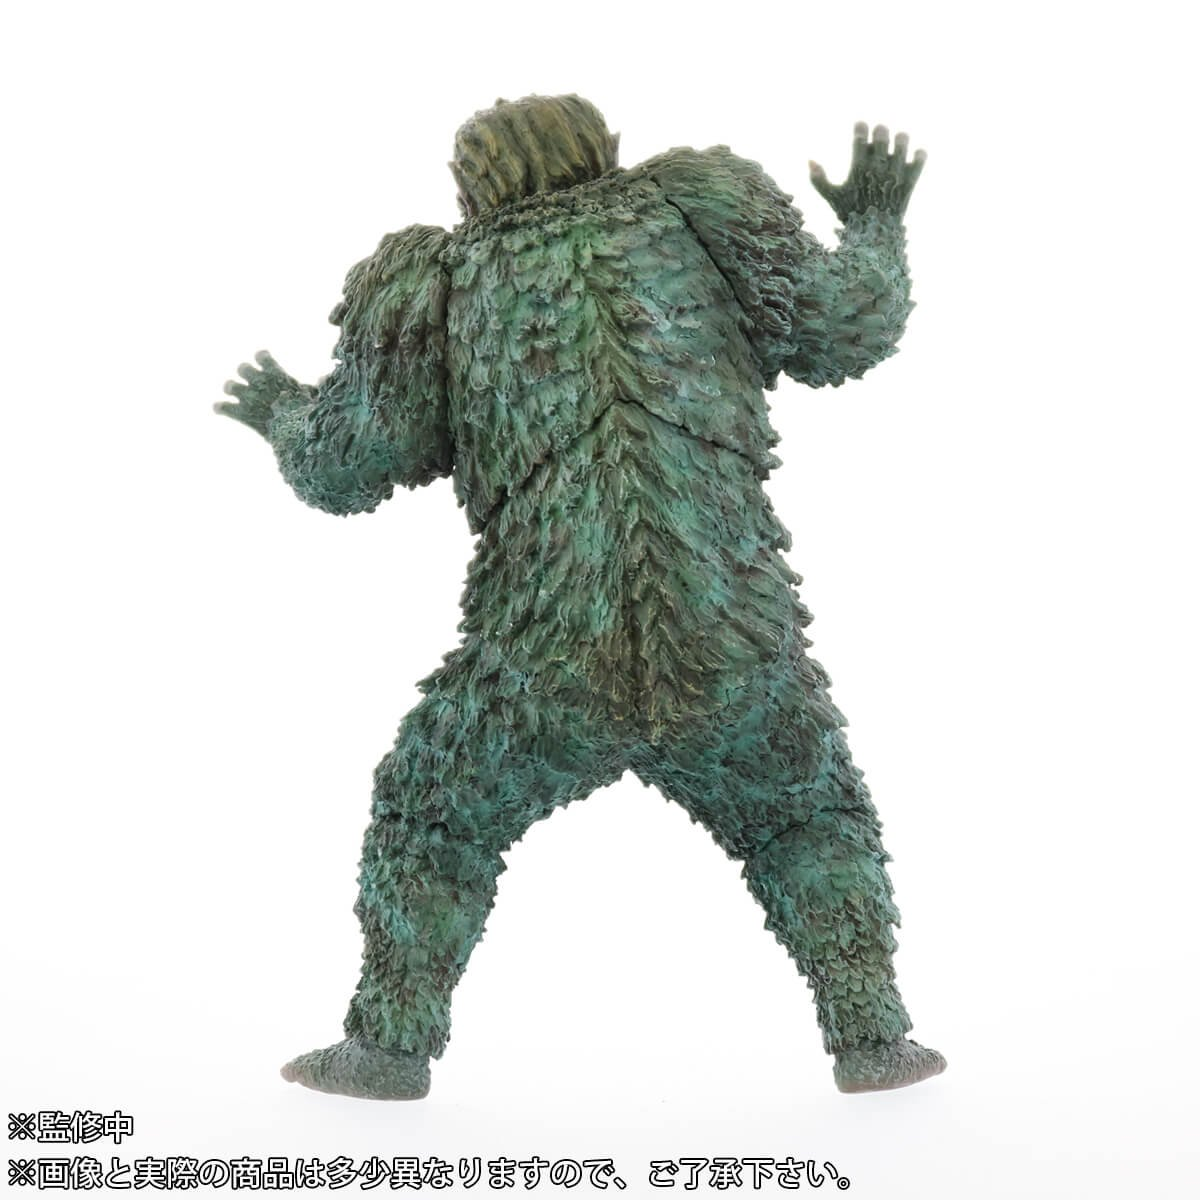 Toho Large Monster Series Sanda vs. Guyra Shonen Rick Limited Edition 12